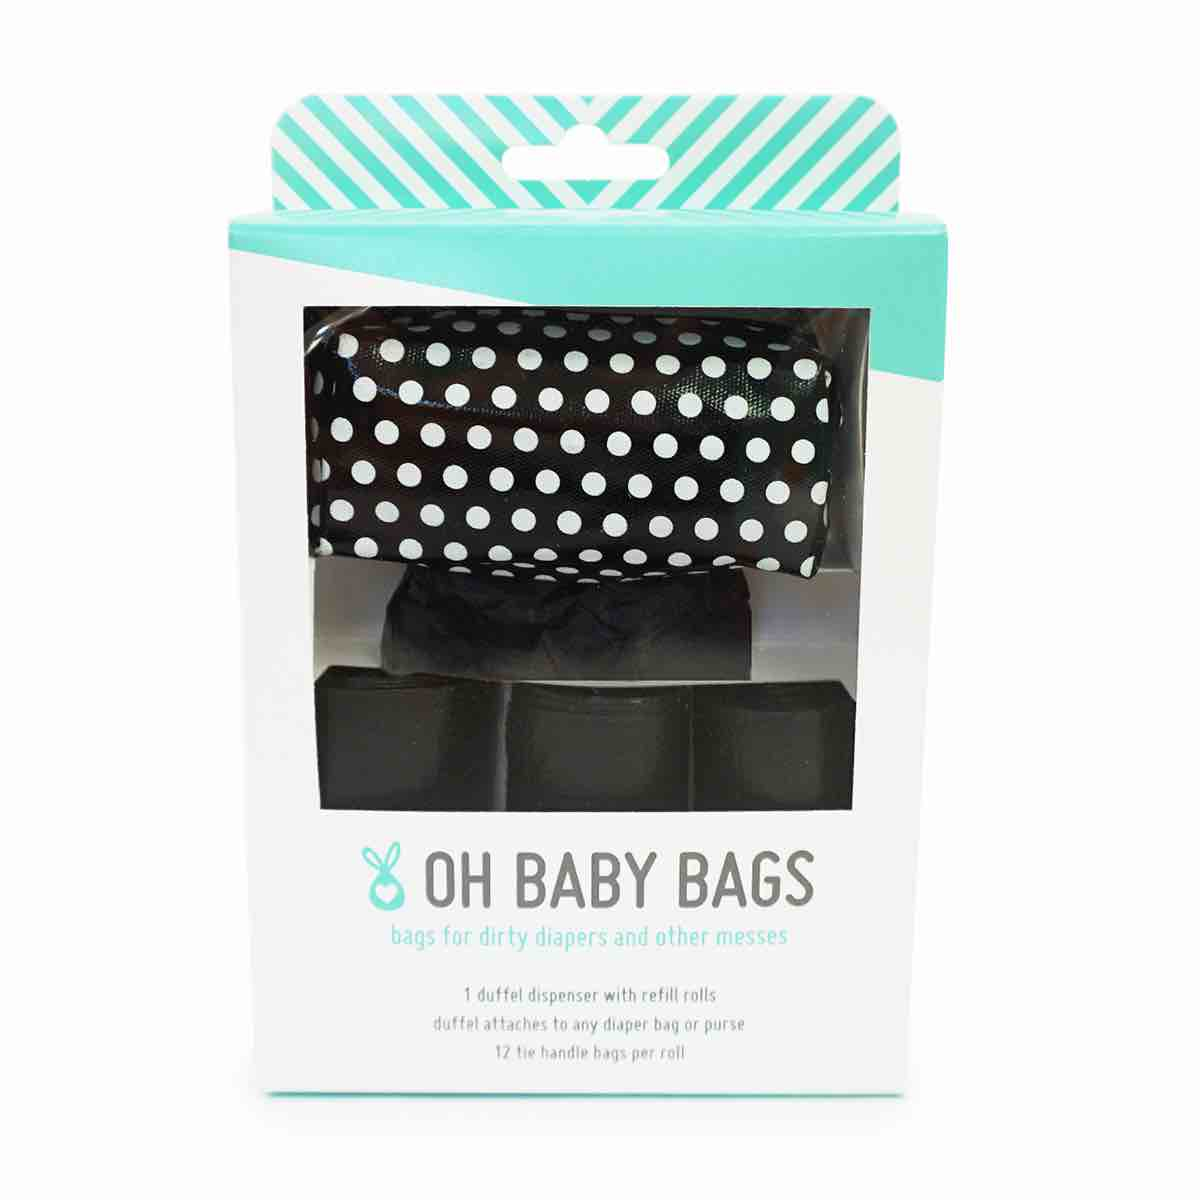 Oh Baby Bags | Duffel + 4 Rolls Gift Set | Assorted Patterns